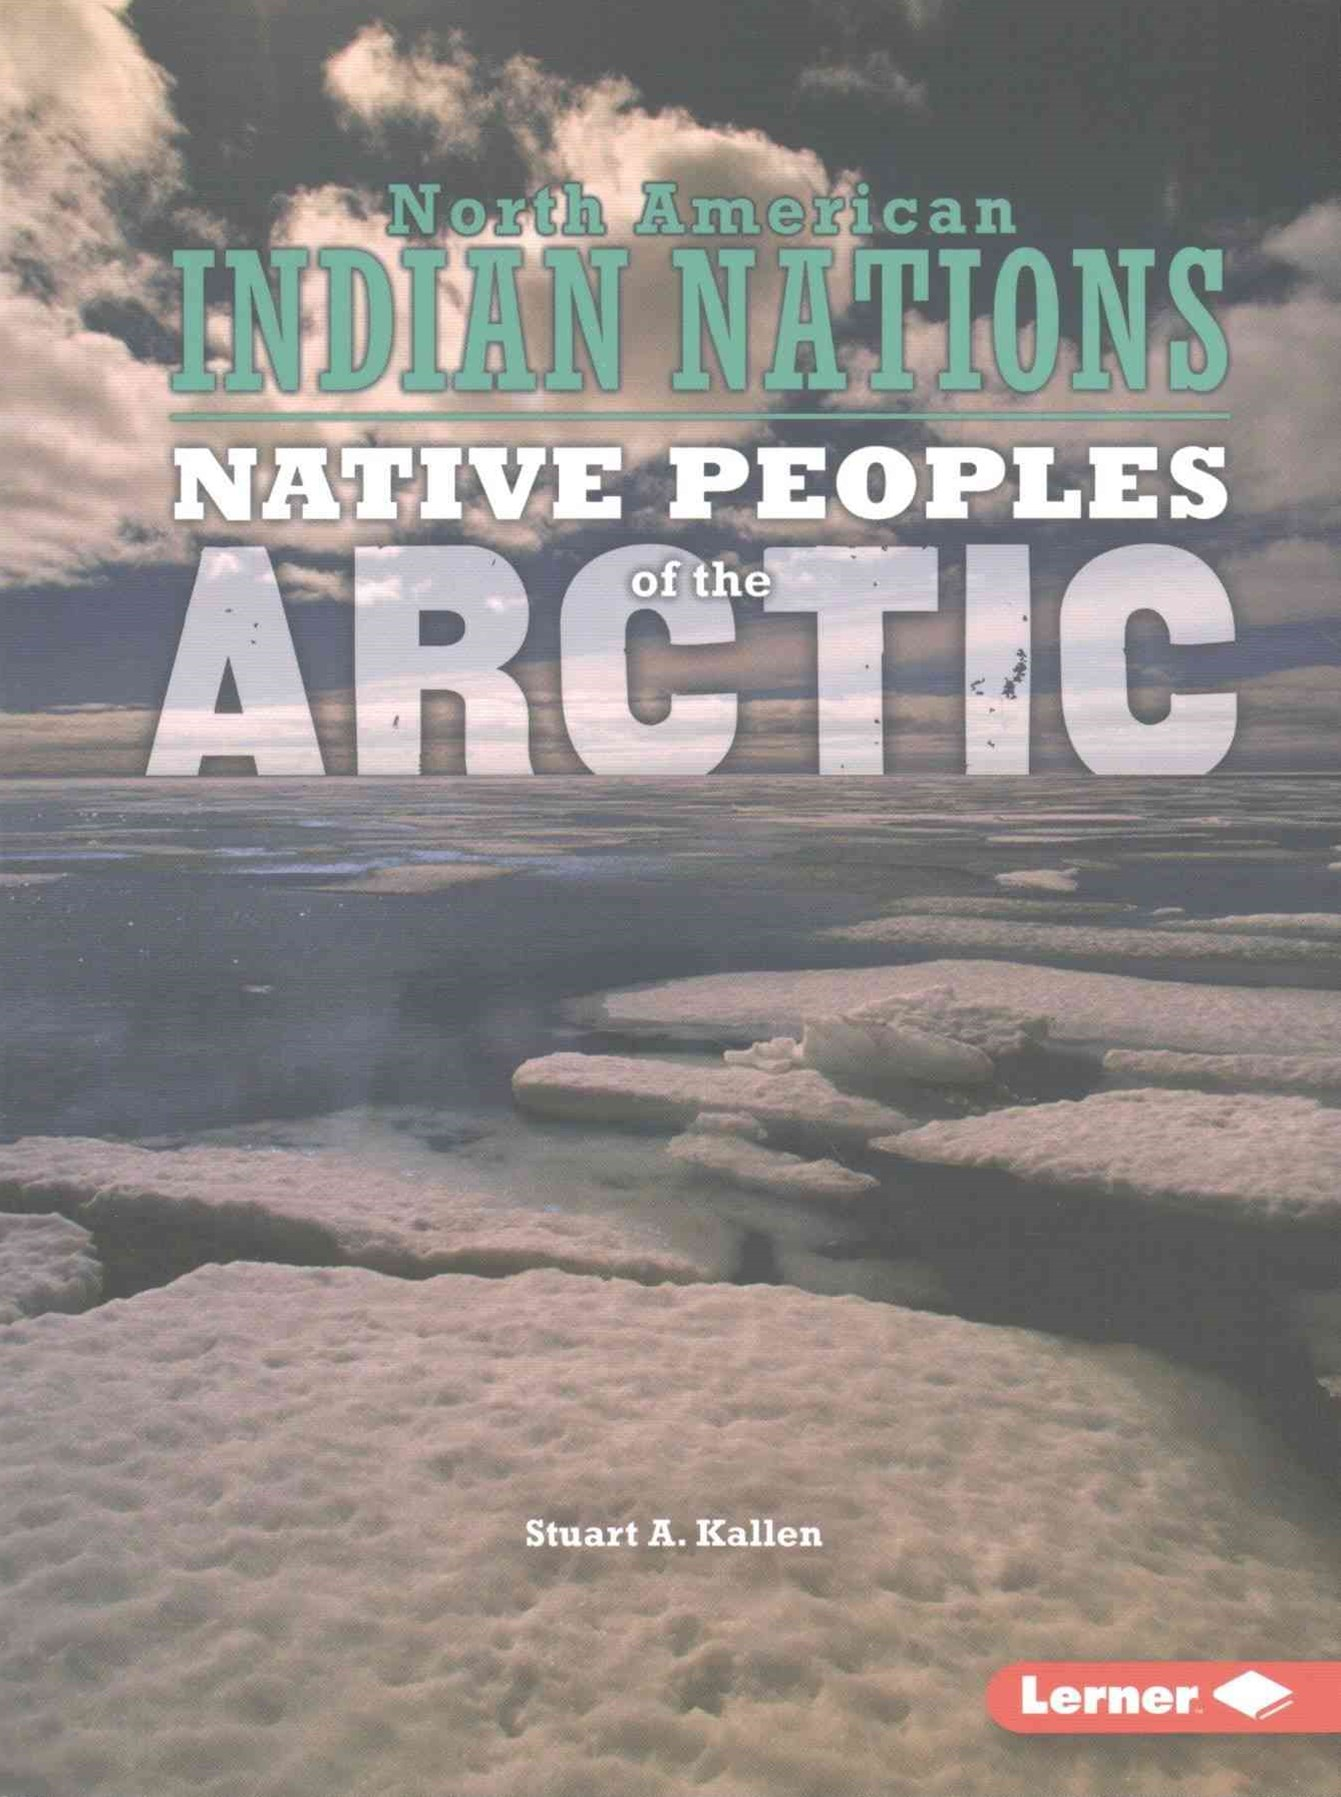 Arctic - Native Peoples - North American Indian Nations